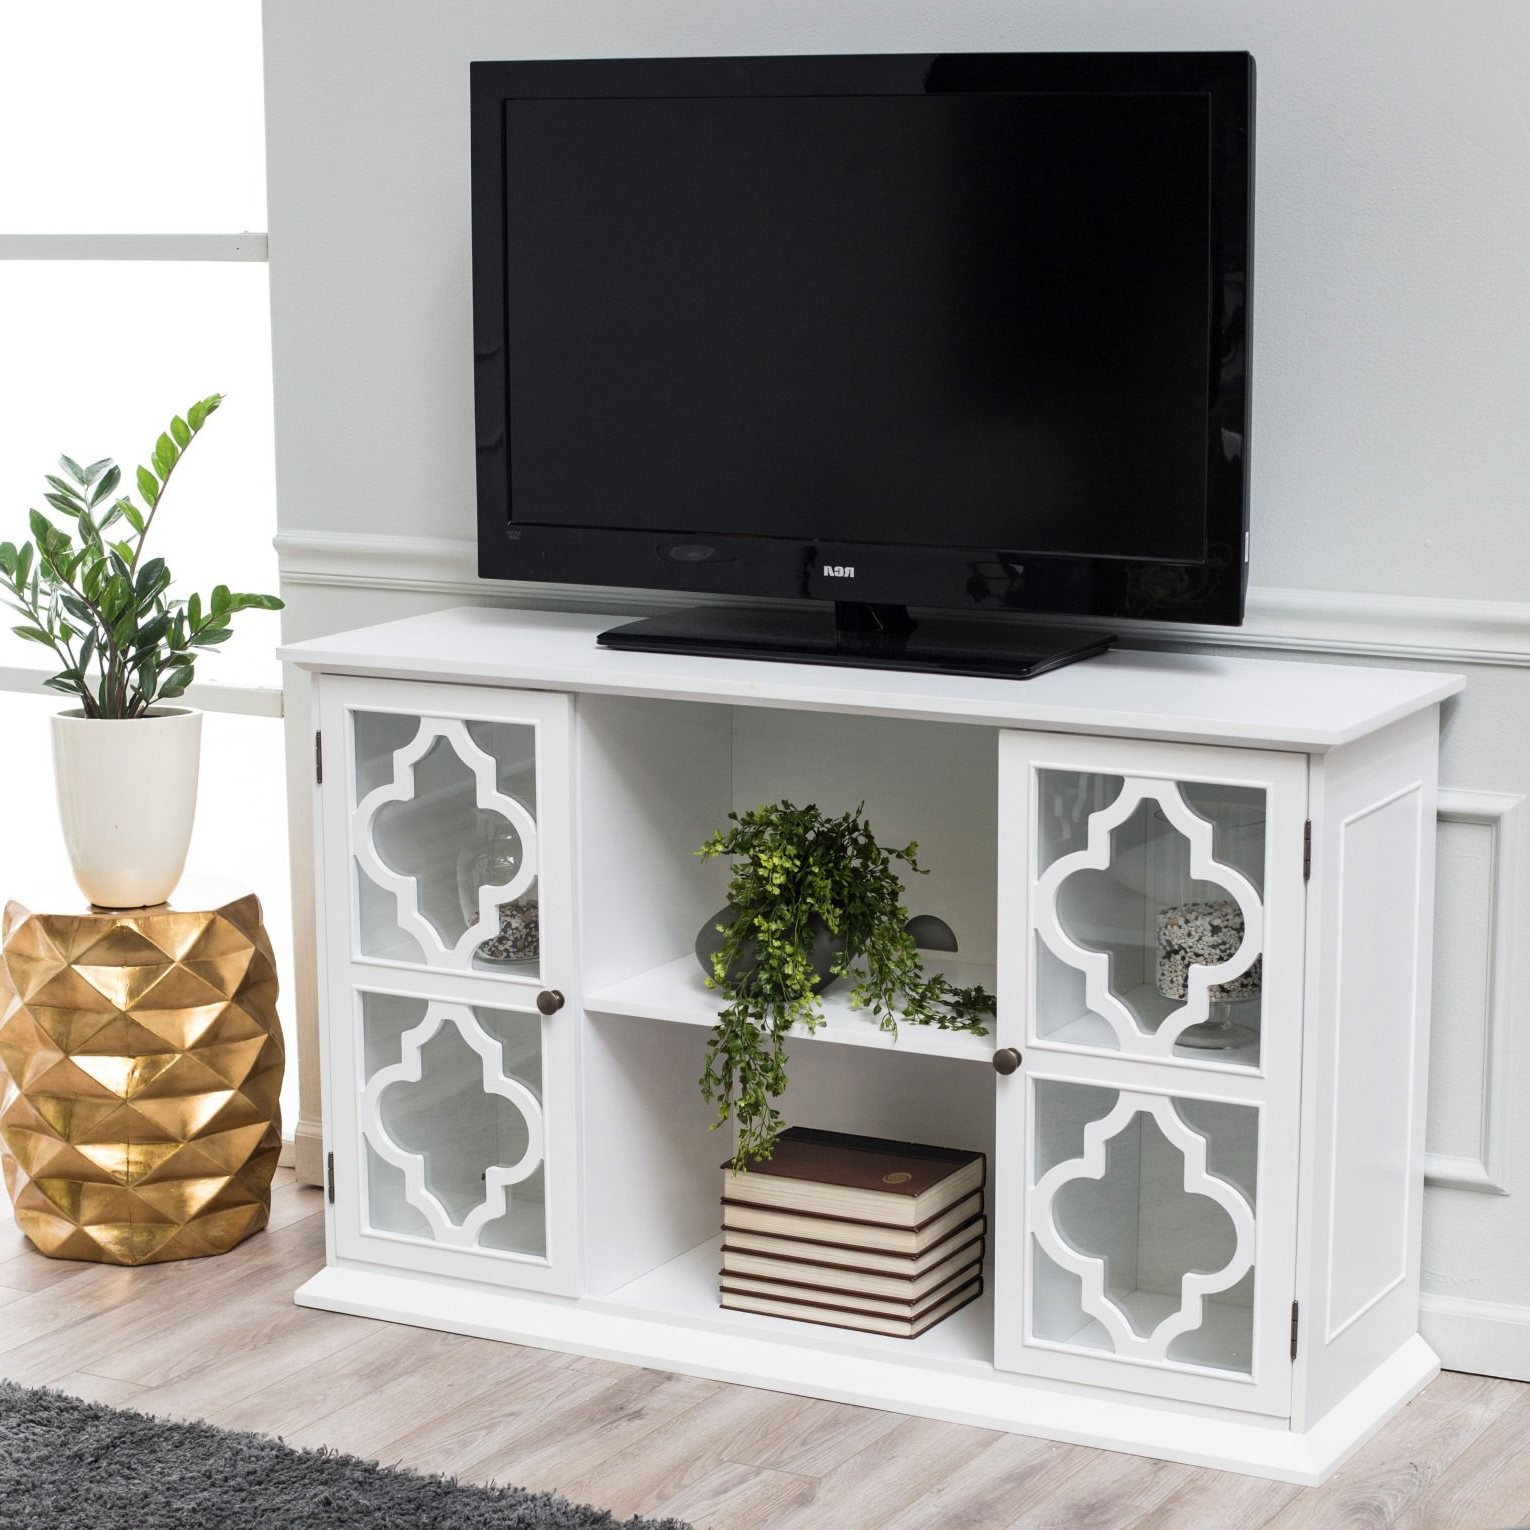 Living Pertaining To Latest Laurent 50 Inch Tv Stands (Gallery 14 of 20)